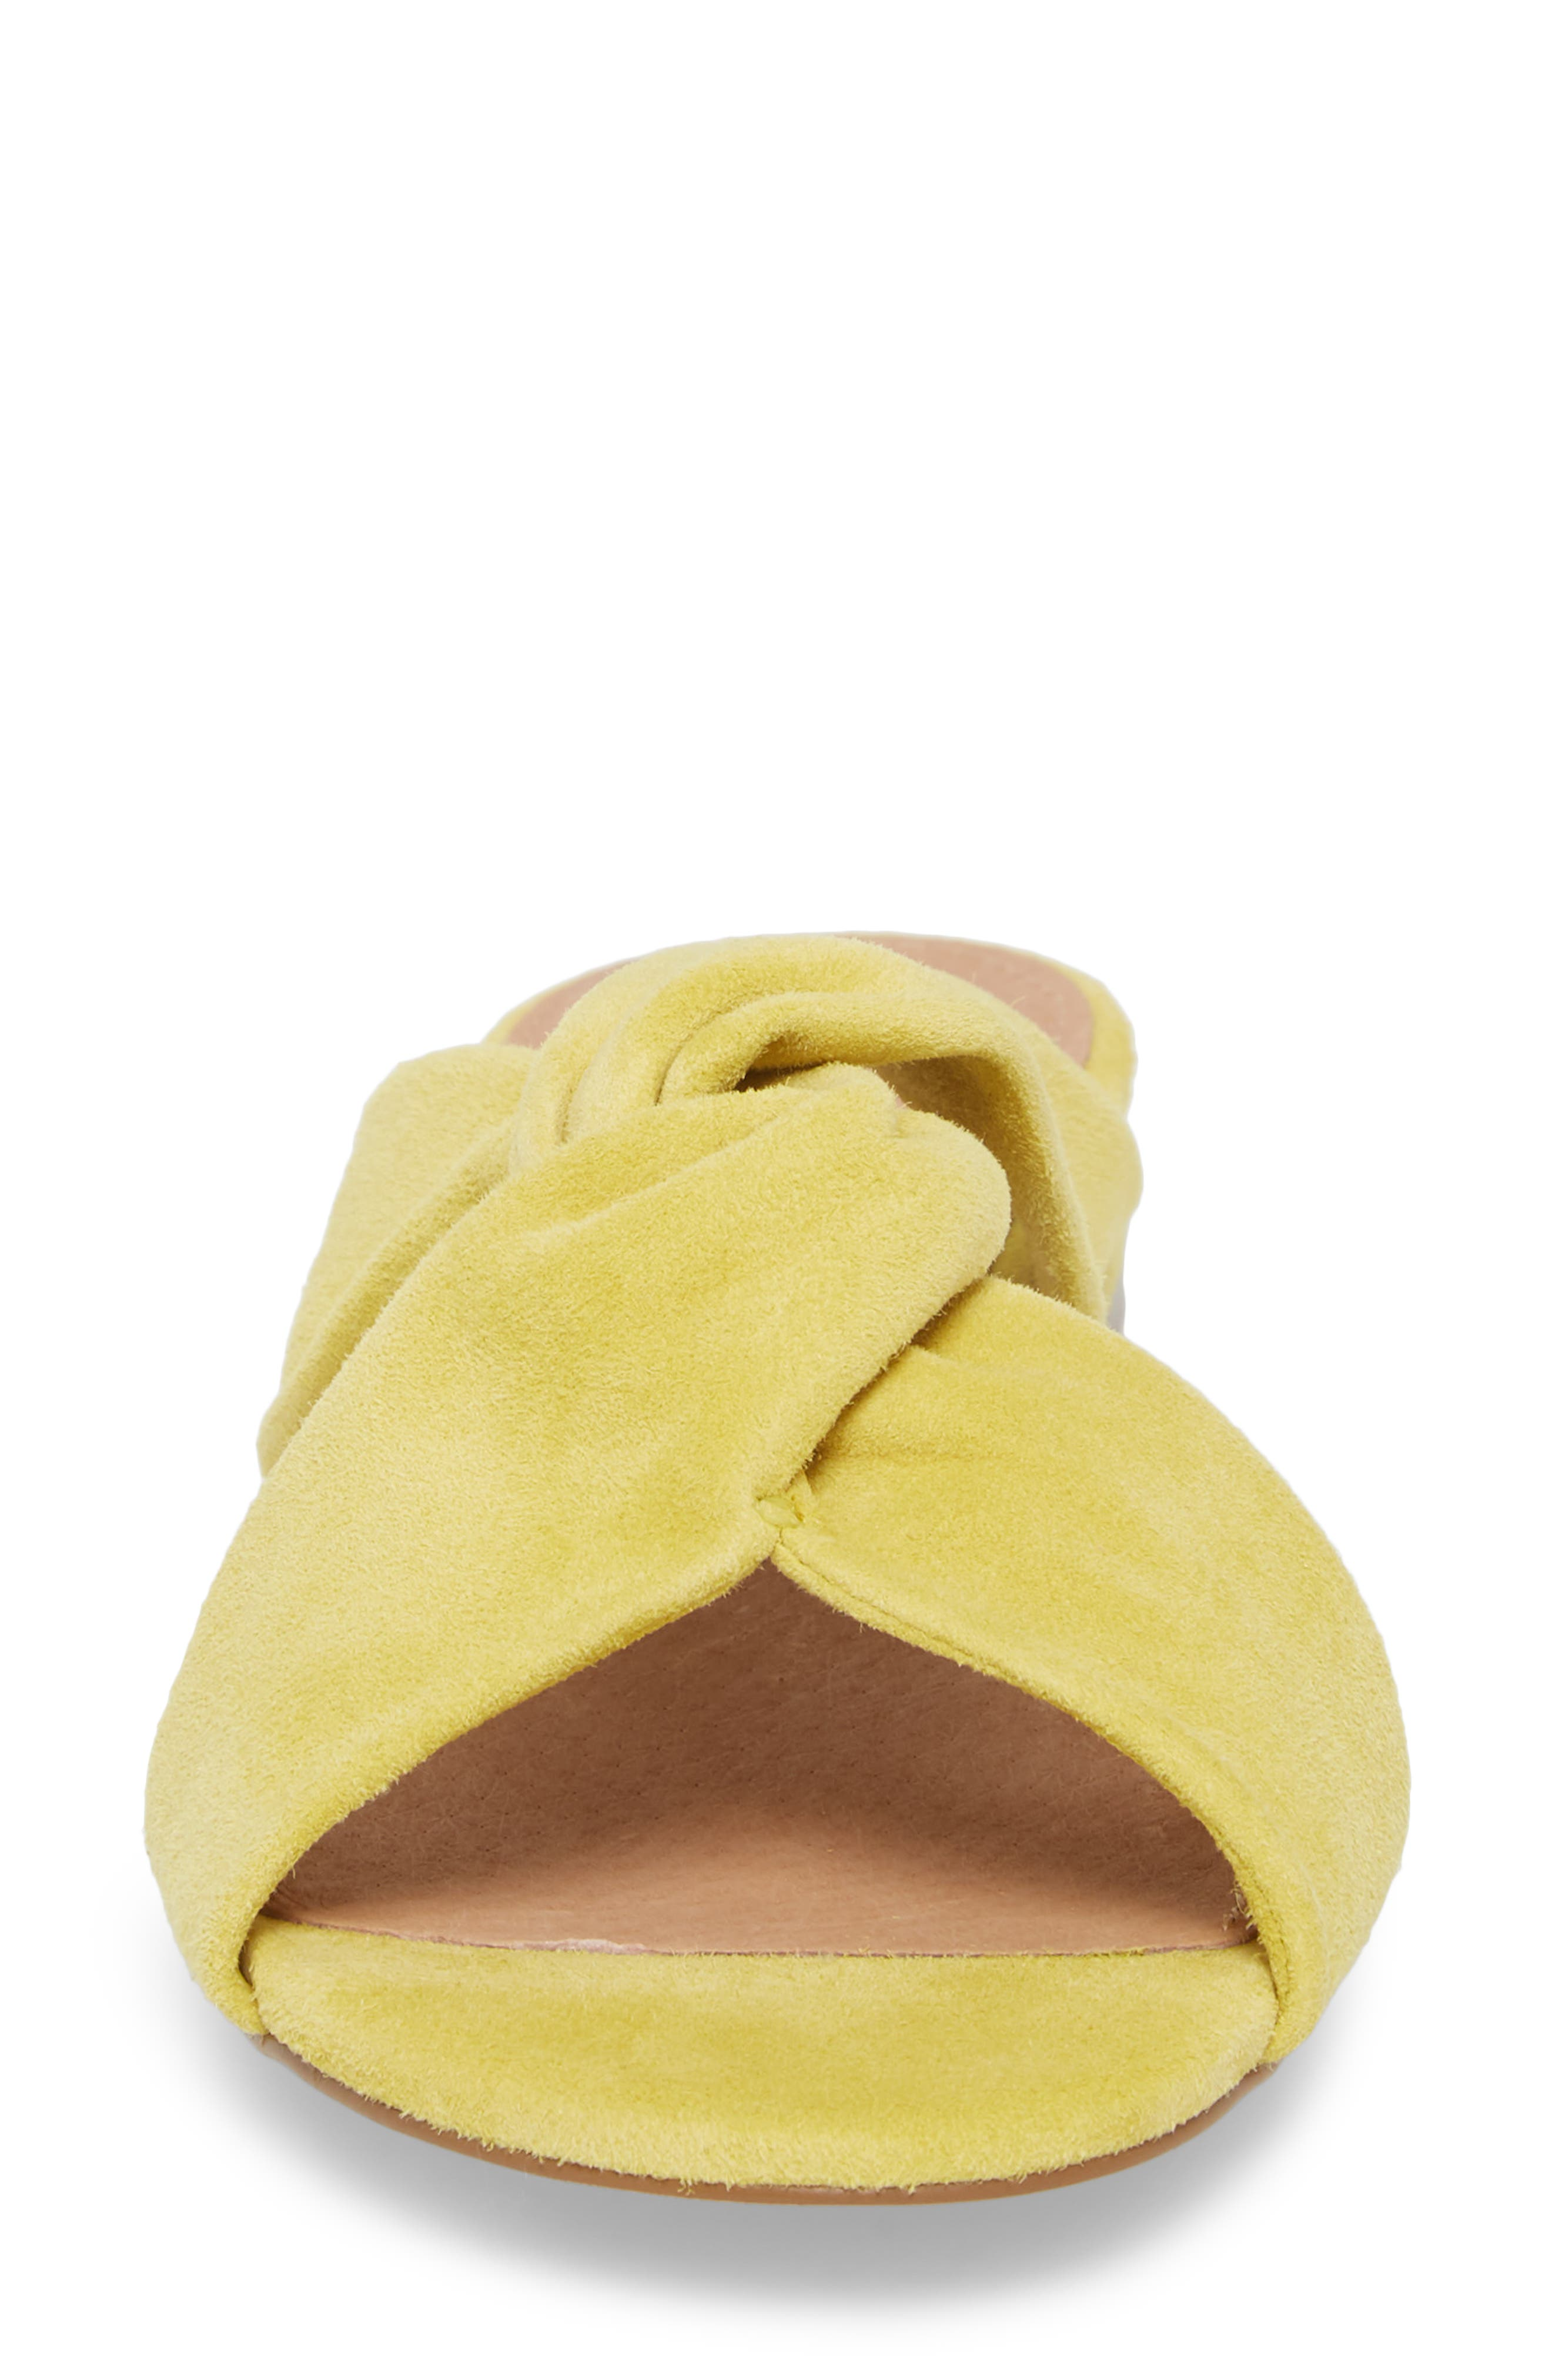 Andre Slide Sandal,                             Alternate thumbnail 4, color,                             Mustard Suede